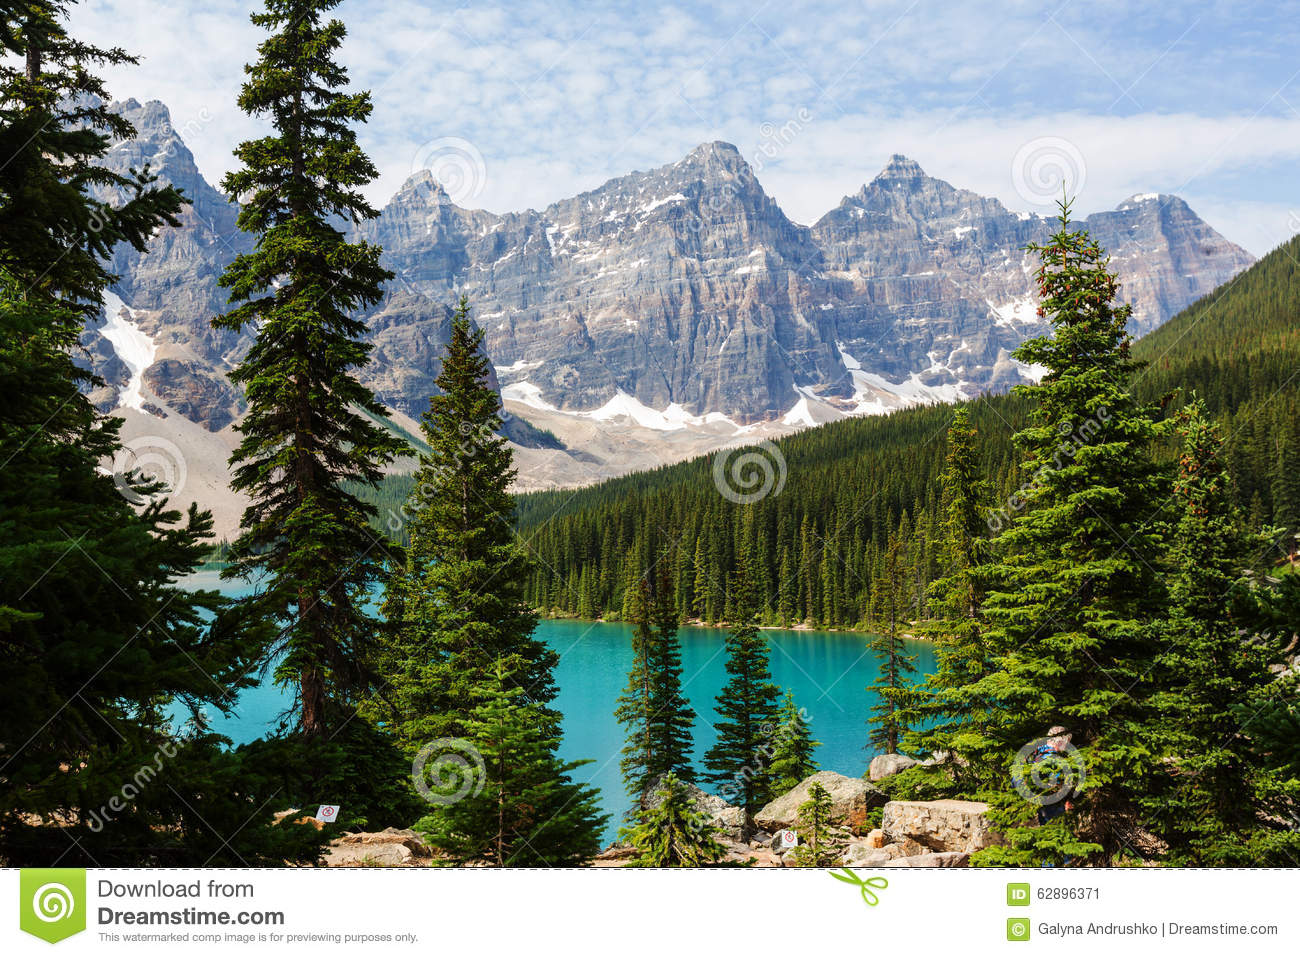 Beautiful Moraine lake in Banff National park, Canada.